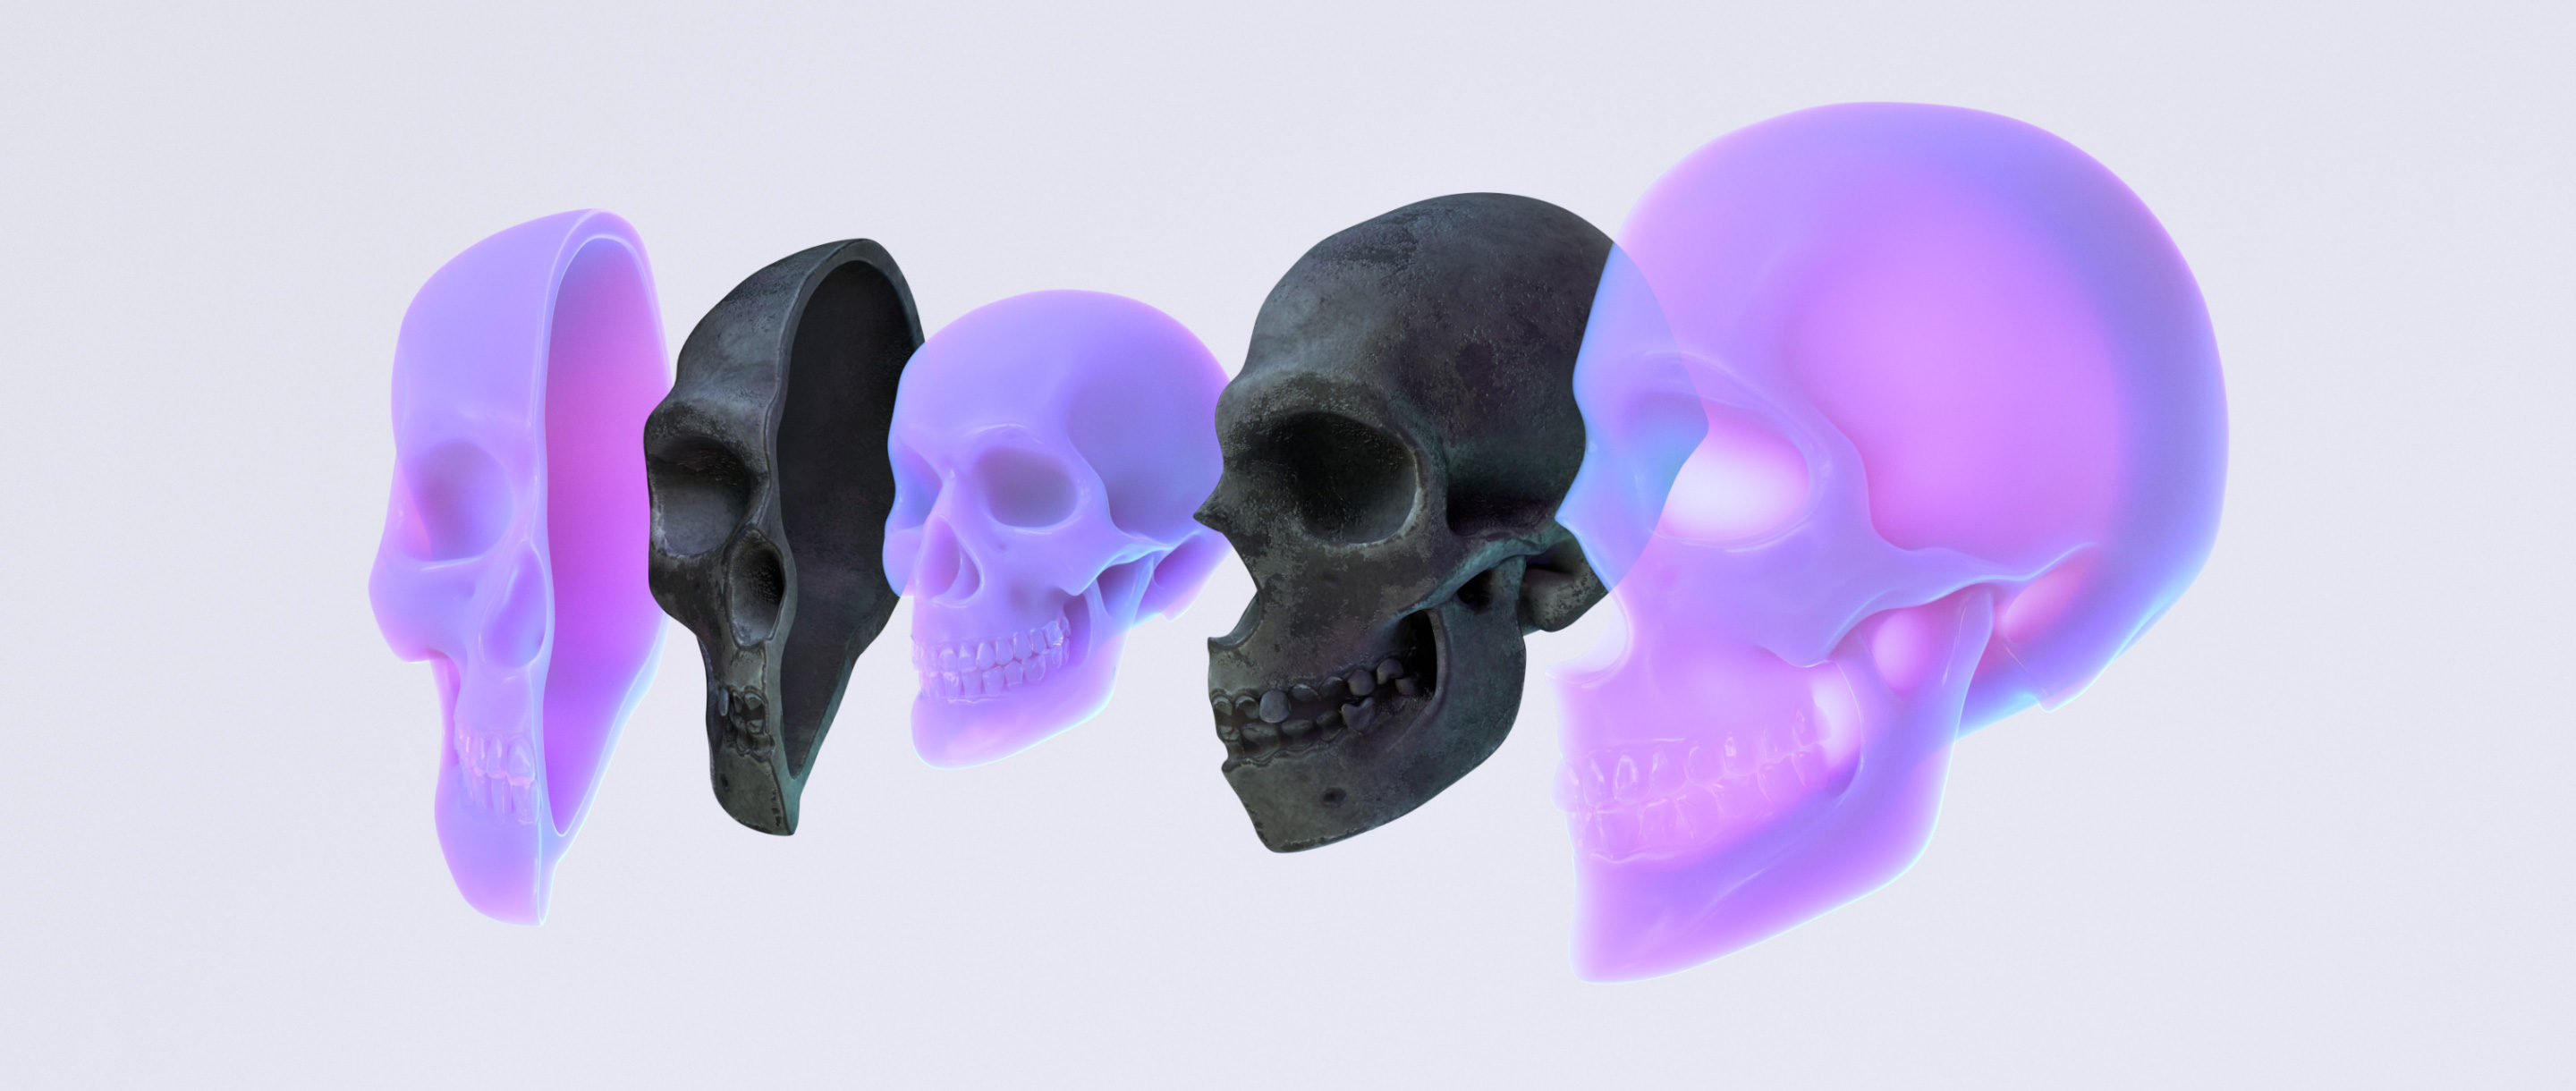 3D illustration of three human skulls, split into left and right halves and nested one inside the next.